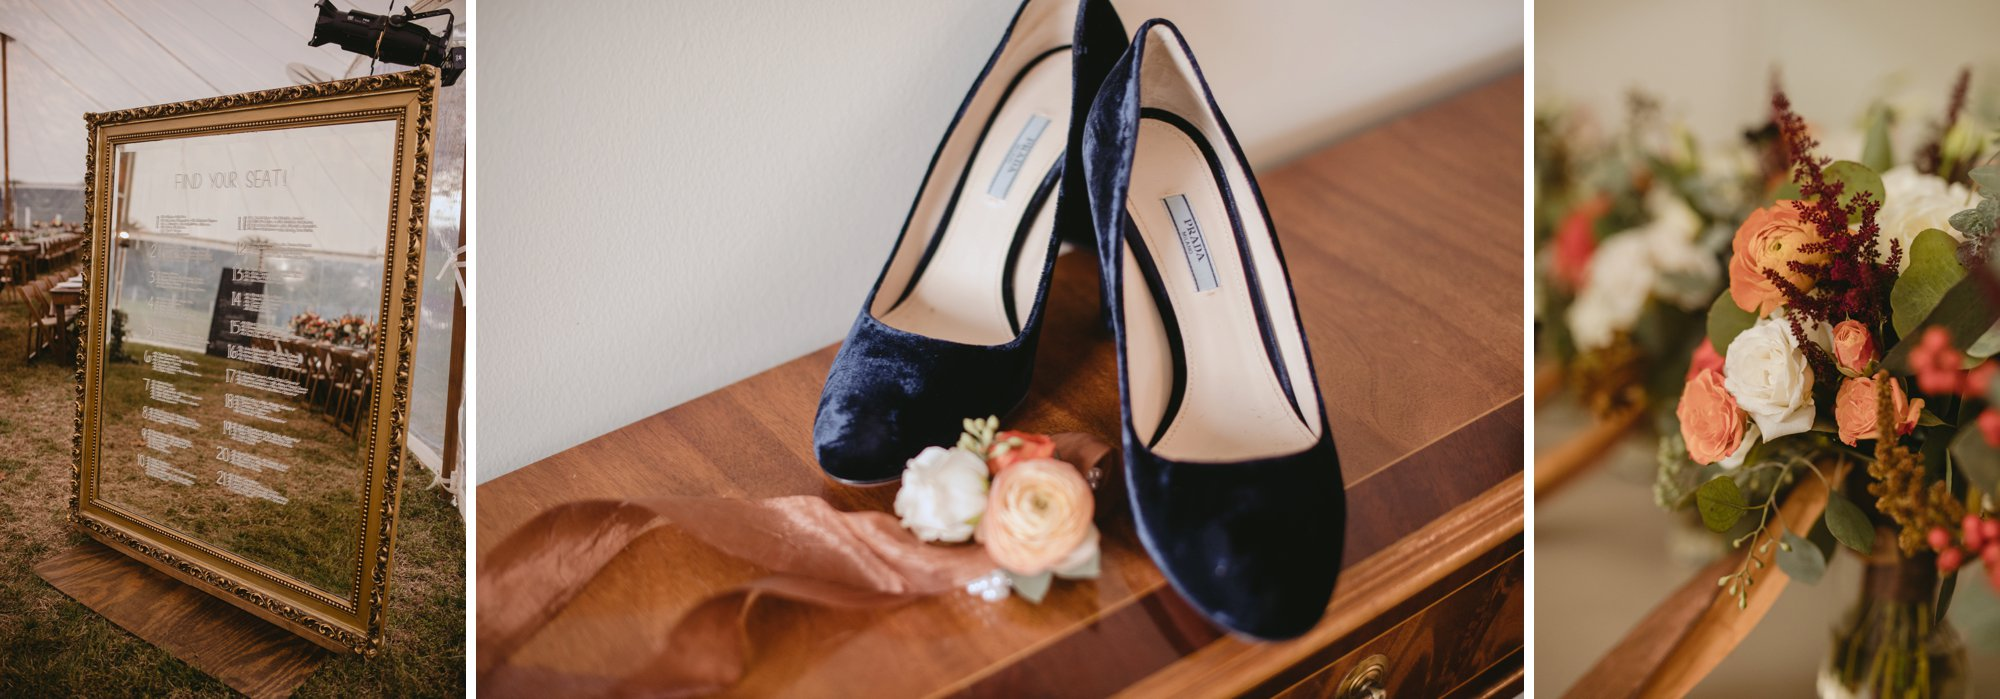 Autumn Richmond VA winery wedding at Upper Shirley Vineyards with lush garden florals and old Hollywood glamour getting ready details